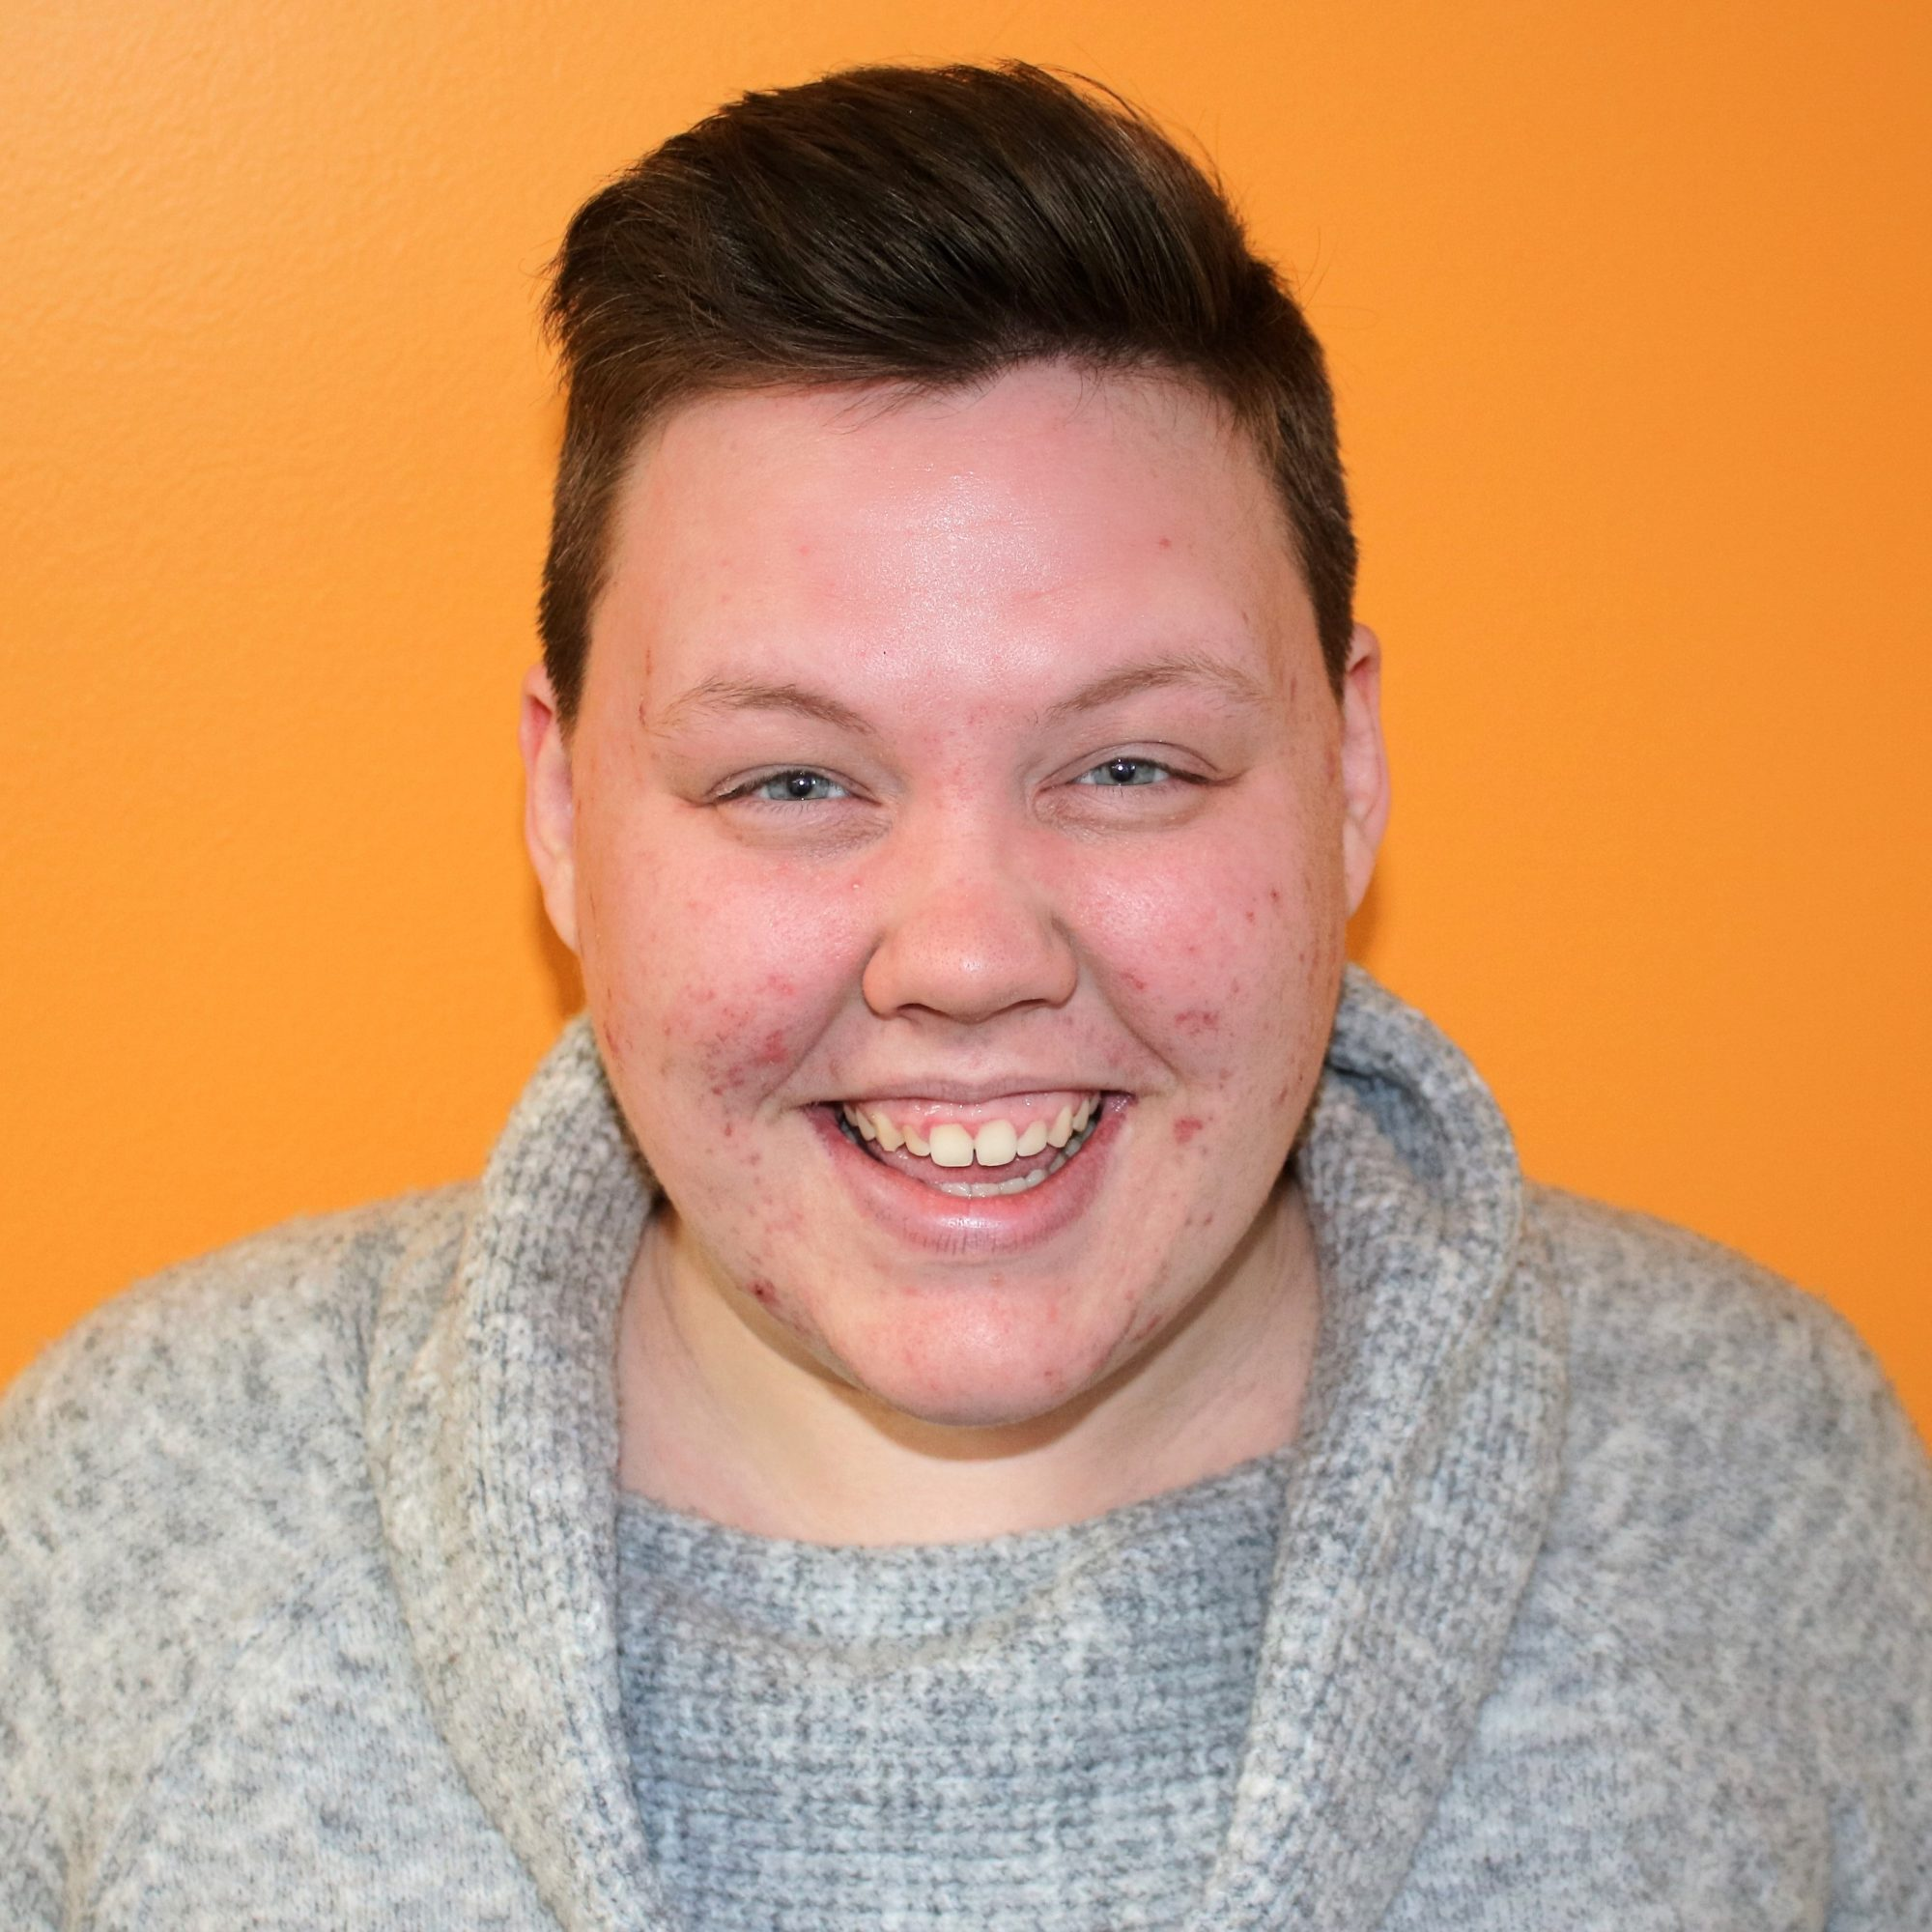 Transforming Faces, Cari Siebrits, Communications & Engagement Manager